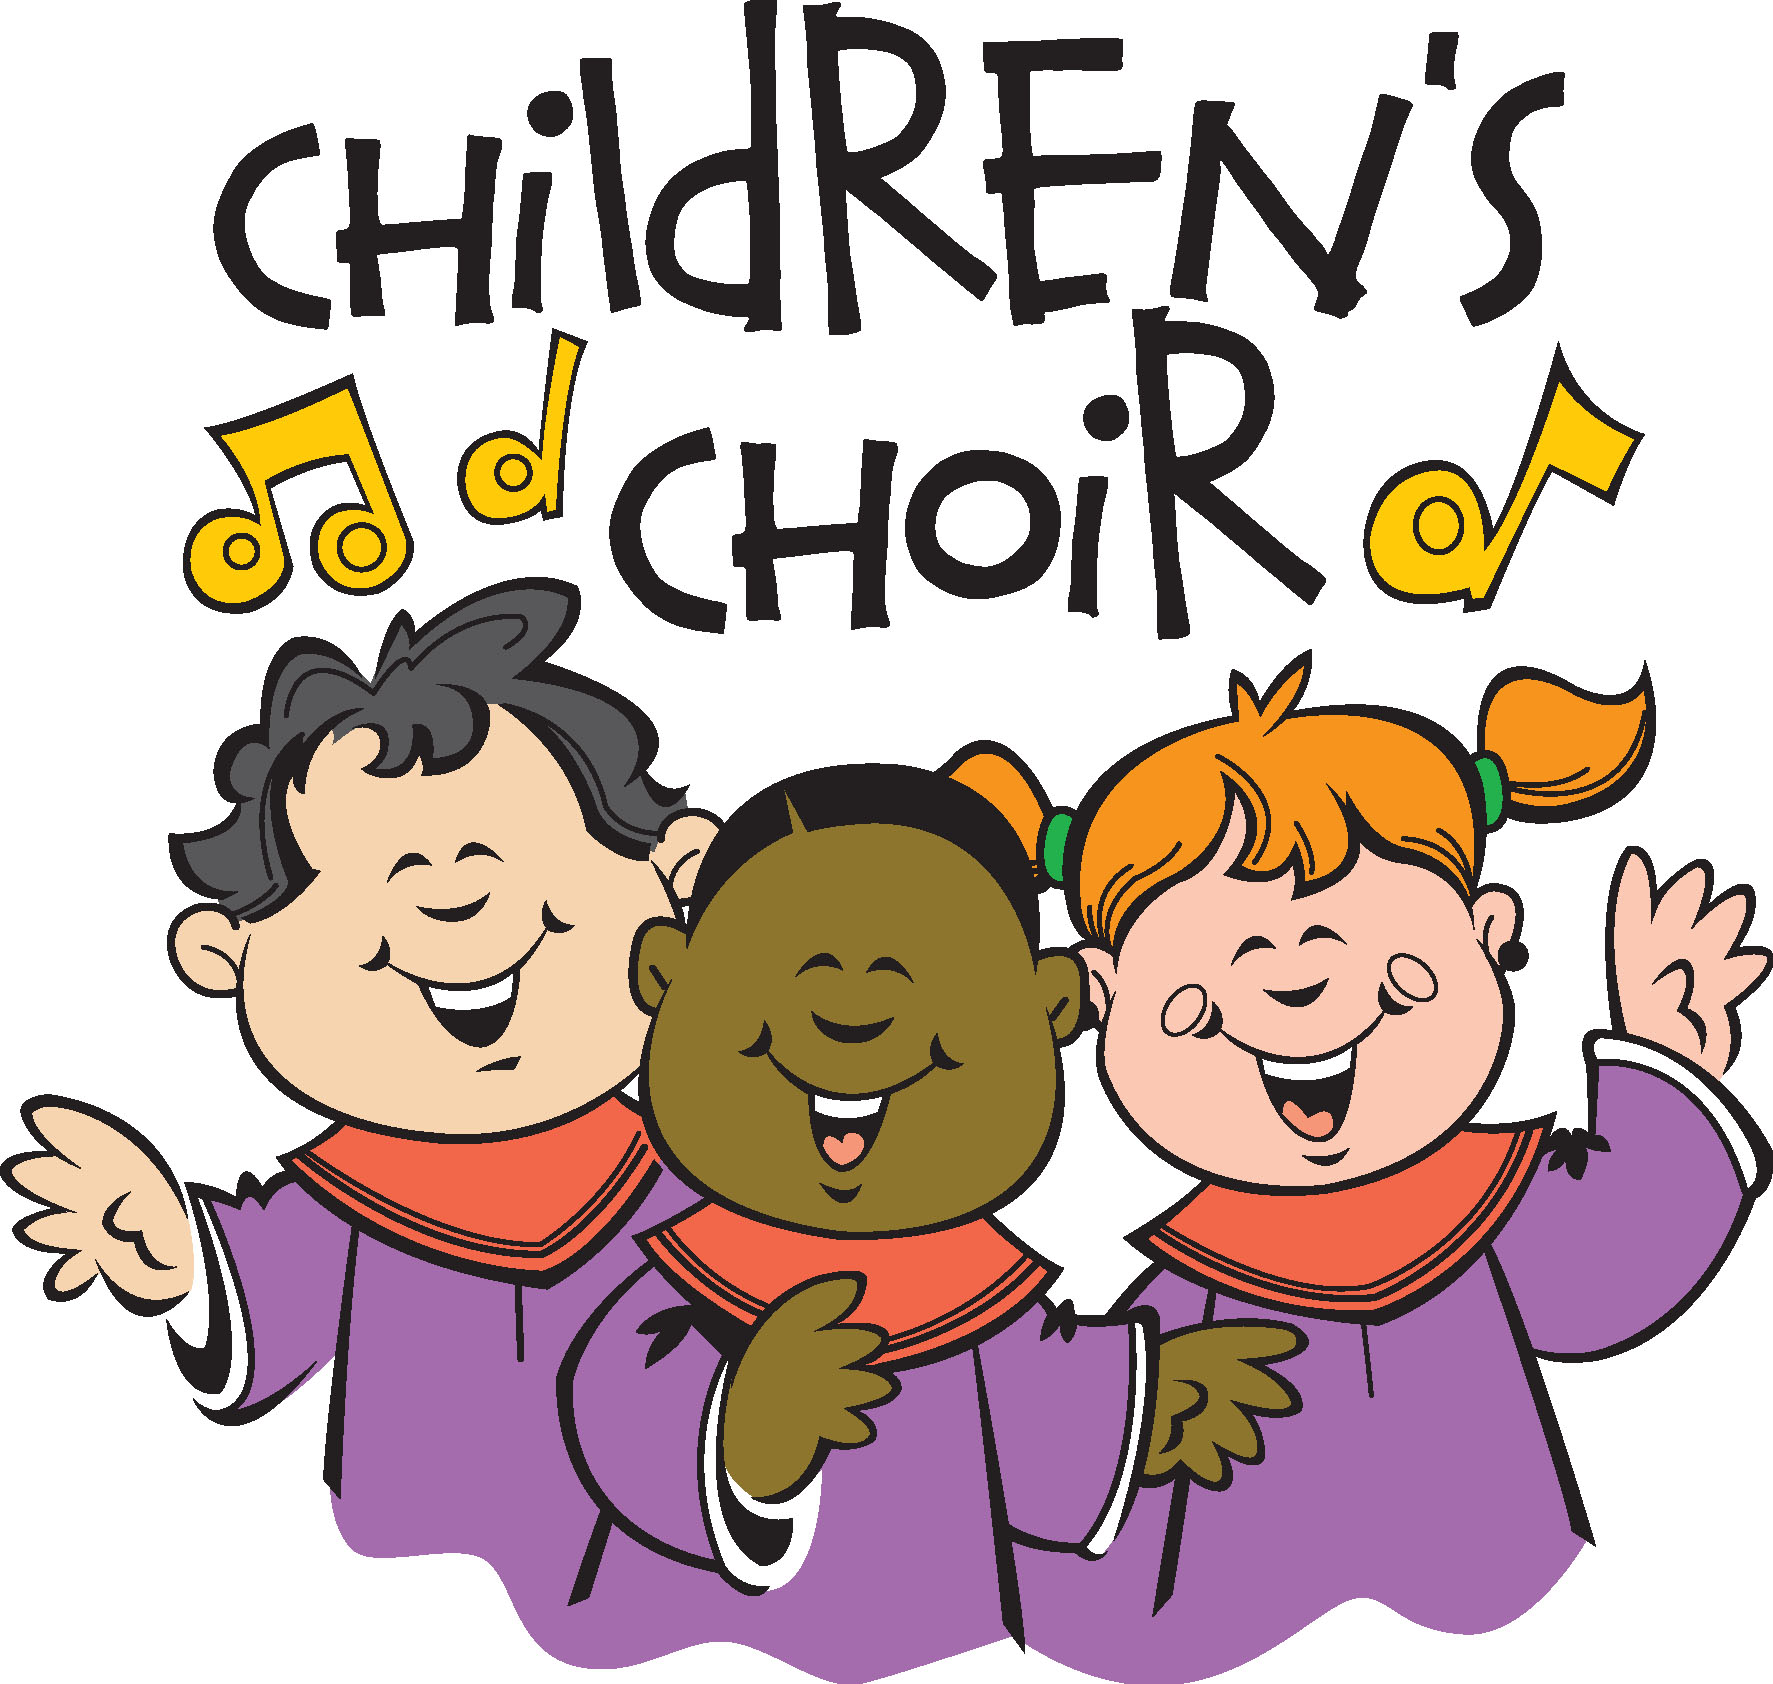 Free Choir Singers Cliparts, Download Free Clip Art, Free.